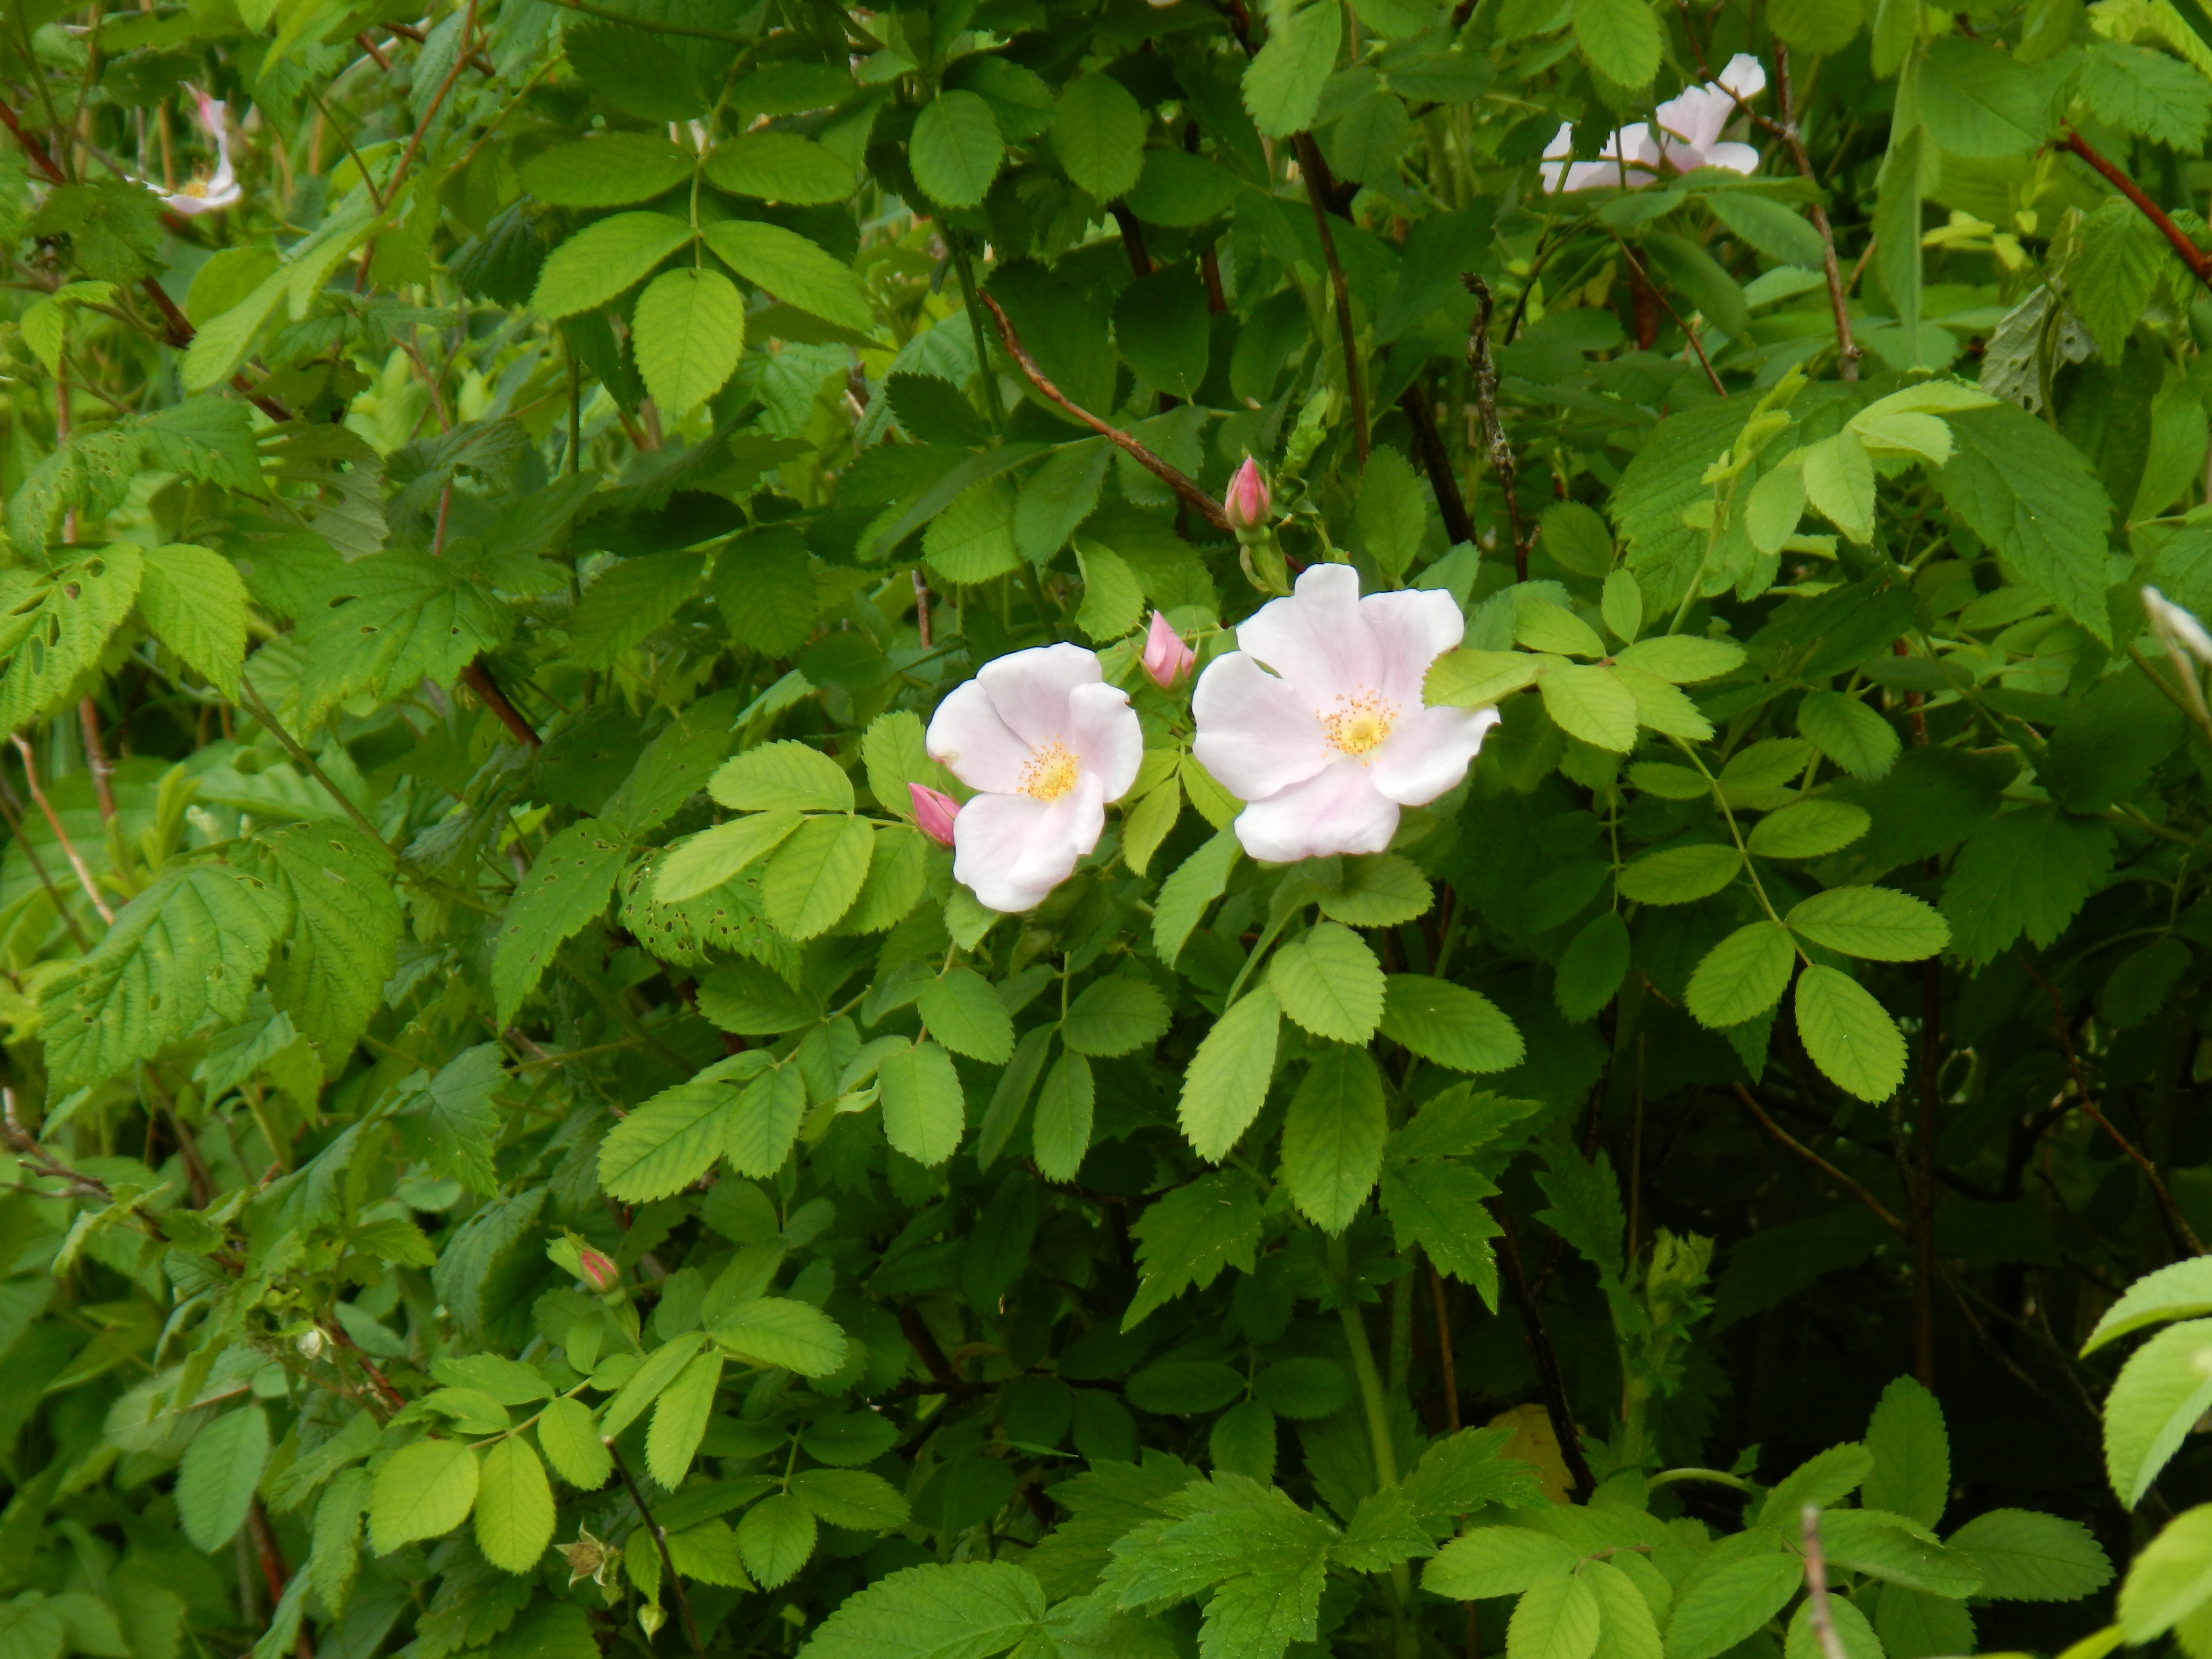 There were magnificent - and fragrant - wild rose bushes blooming on the shore